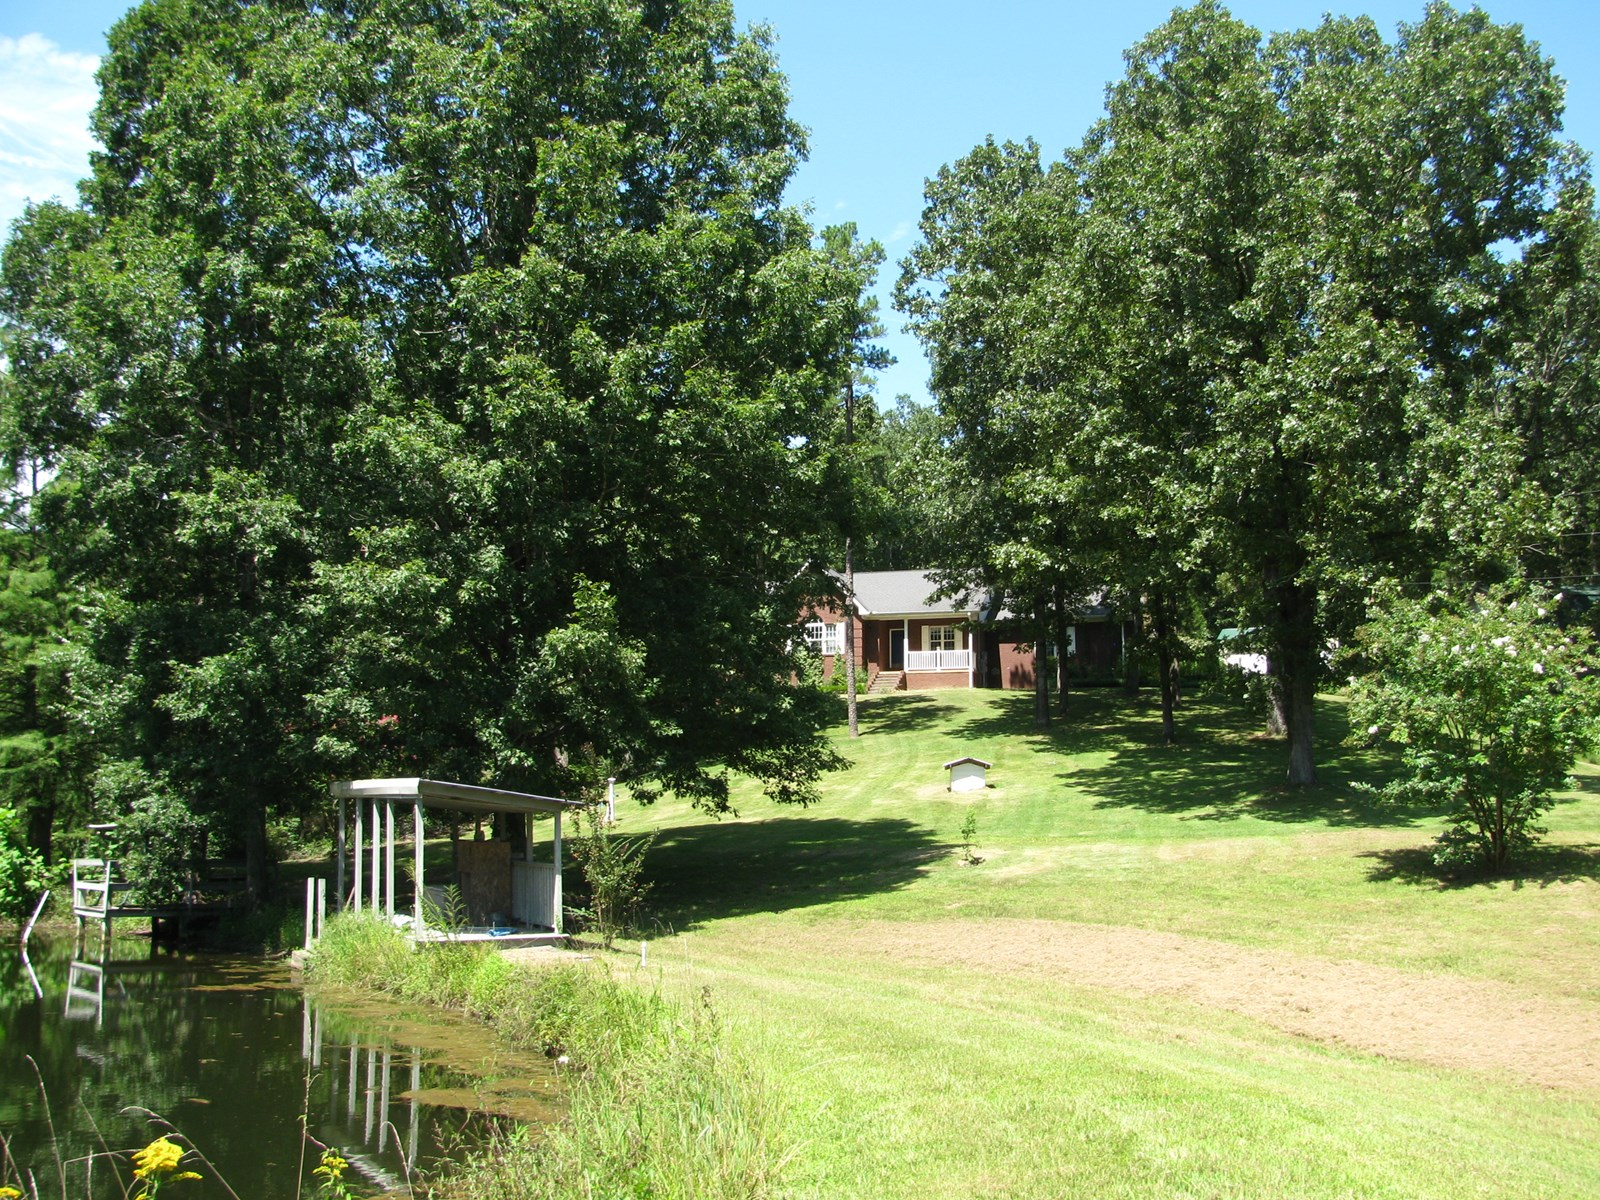 COUNTRY HOME ON ACREAGE IN TN, 2 PONDS, SHOPS, EQUIPMENT